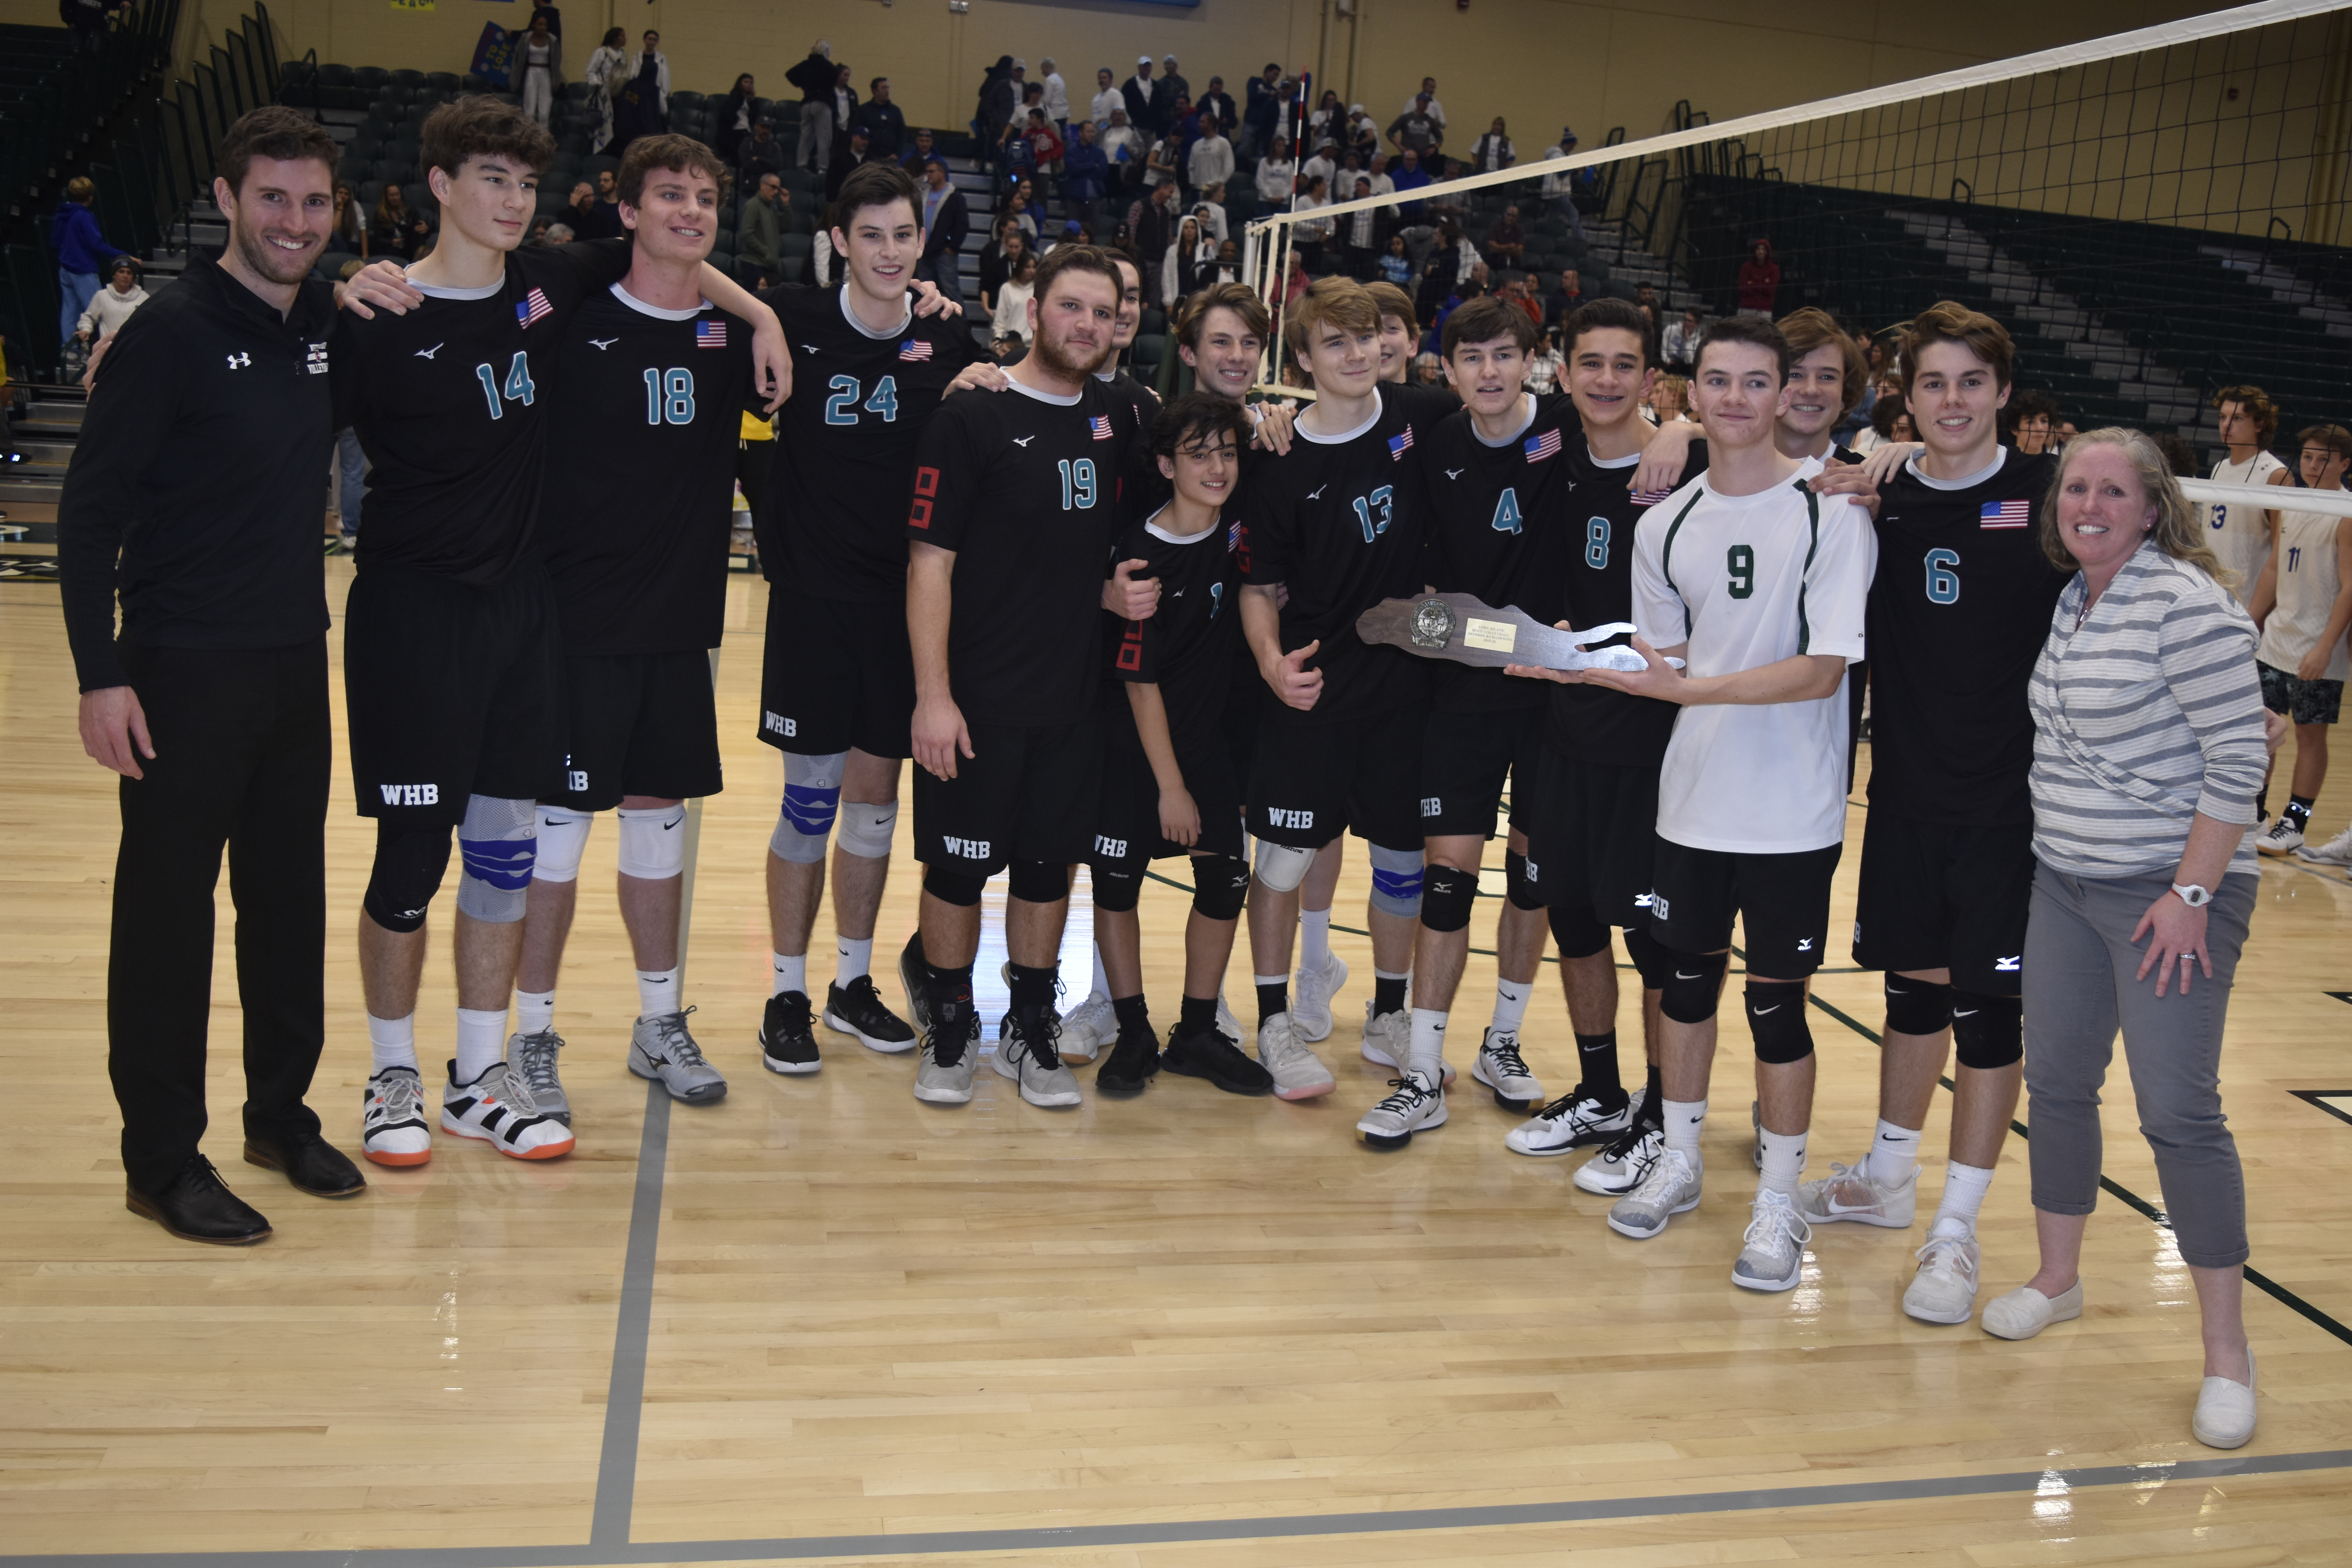 The Westhampton Beach boys volleyball team won its first ever Long Island Championship on Tuesday night after defeating Long Beach, 3-2.